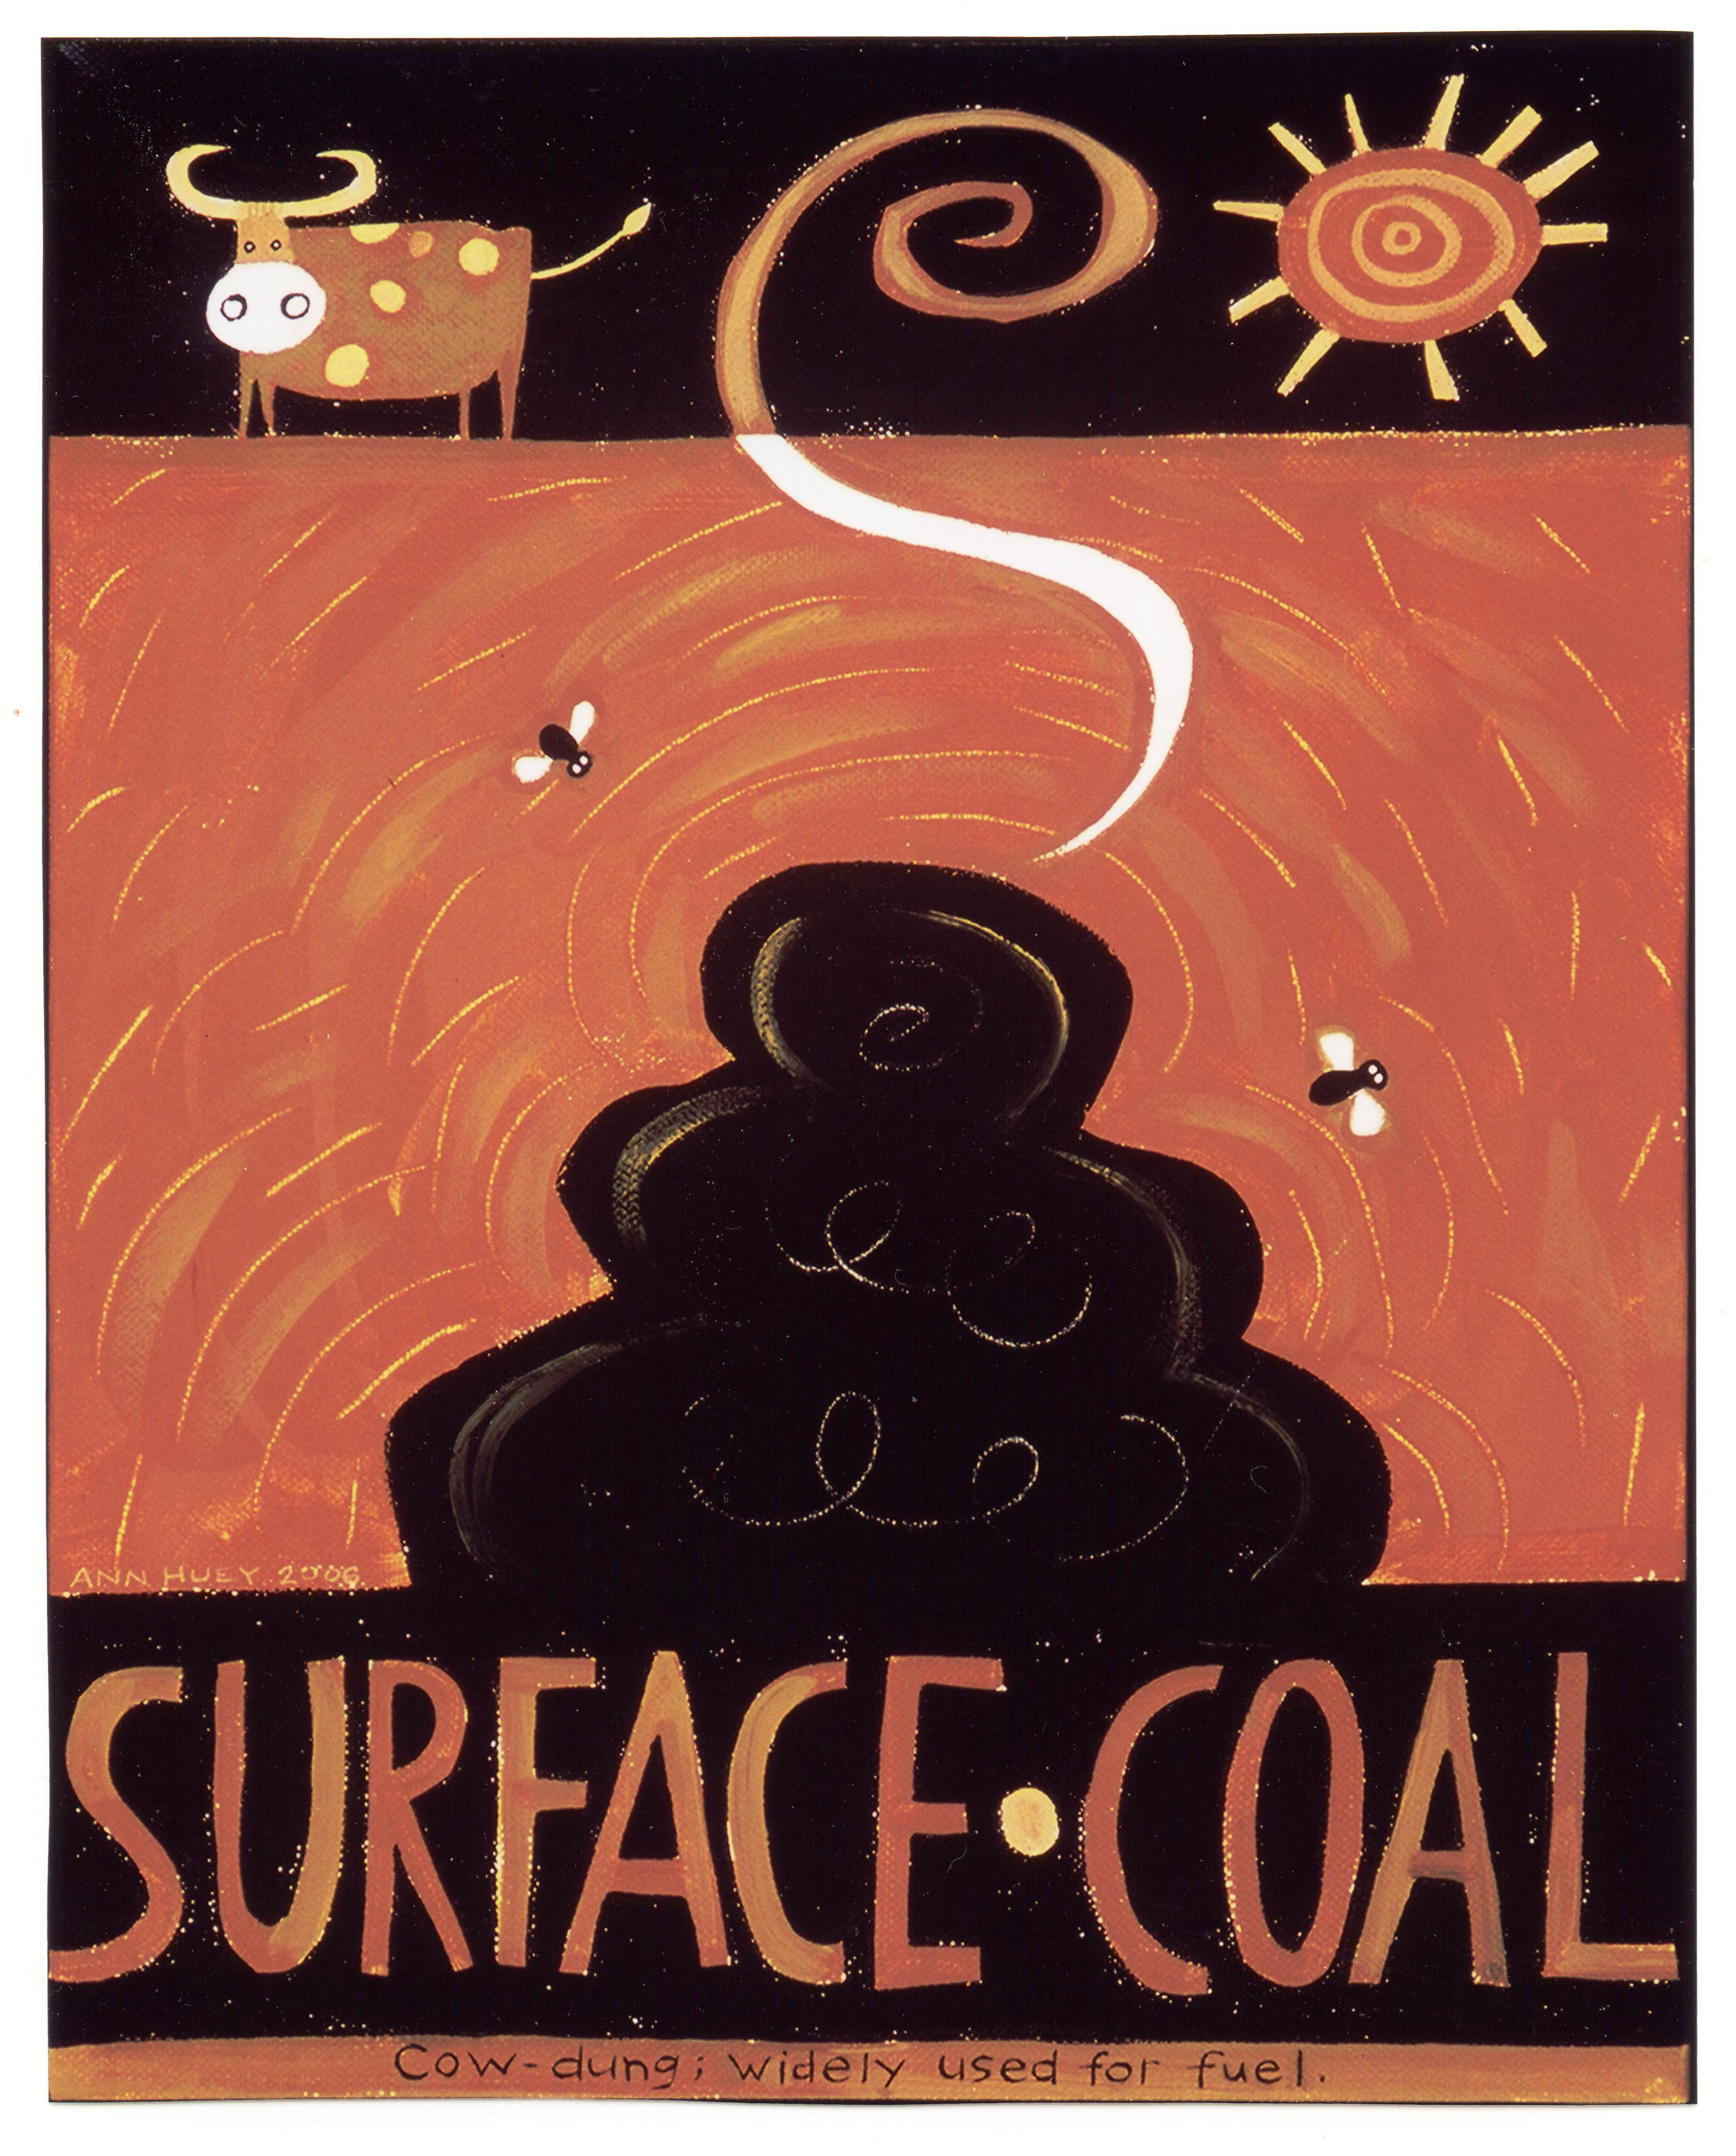 Surface Coal